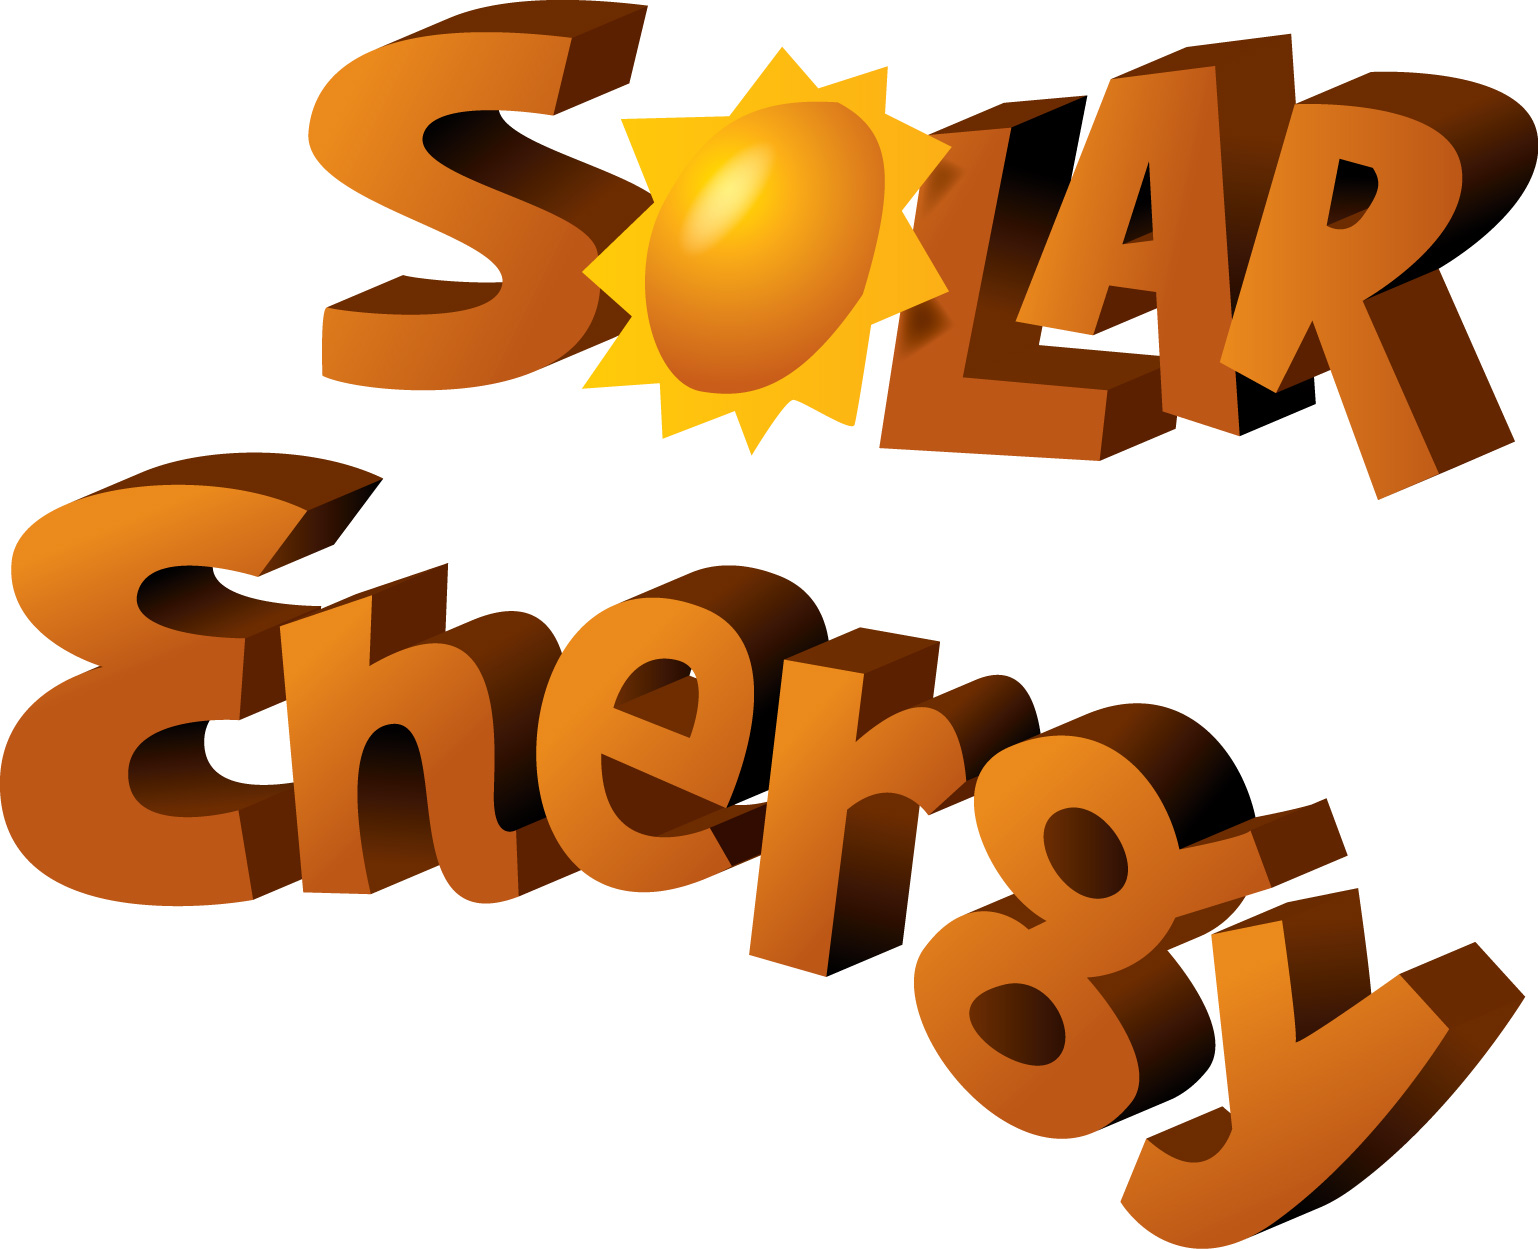 Outreach graphics and logos american chemical society for Uses of solar energy for kids